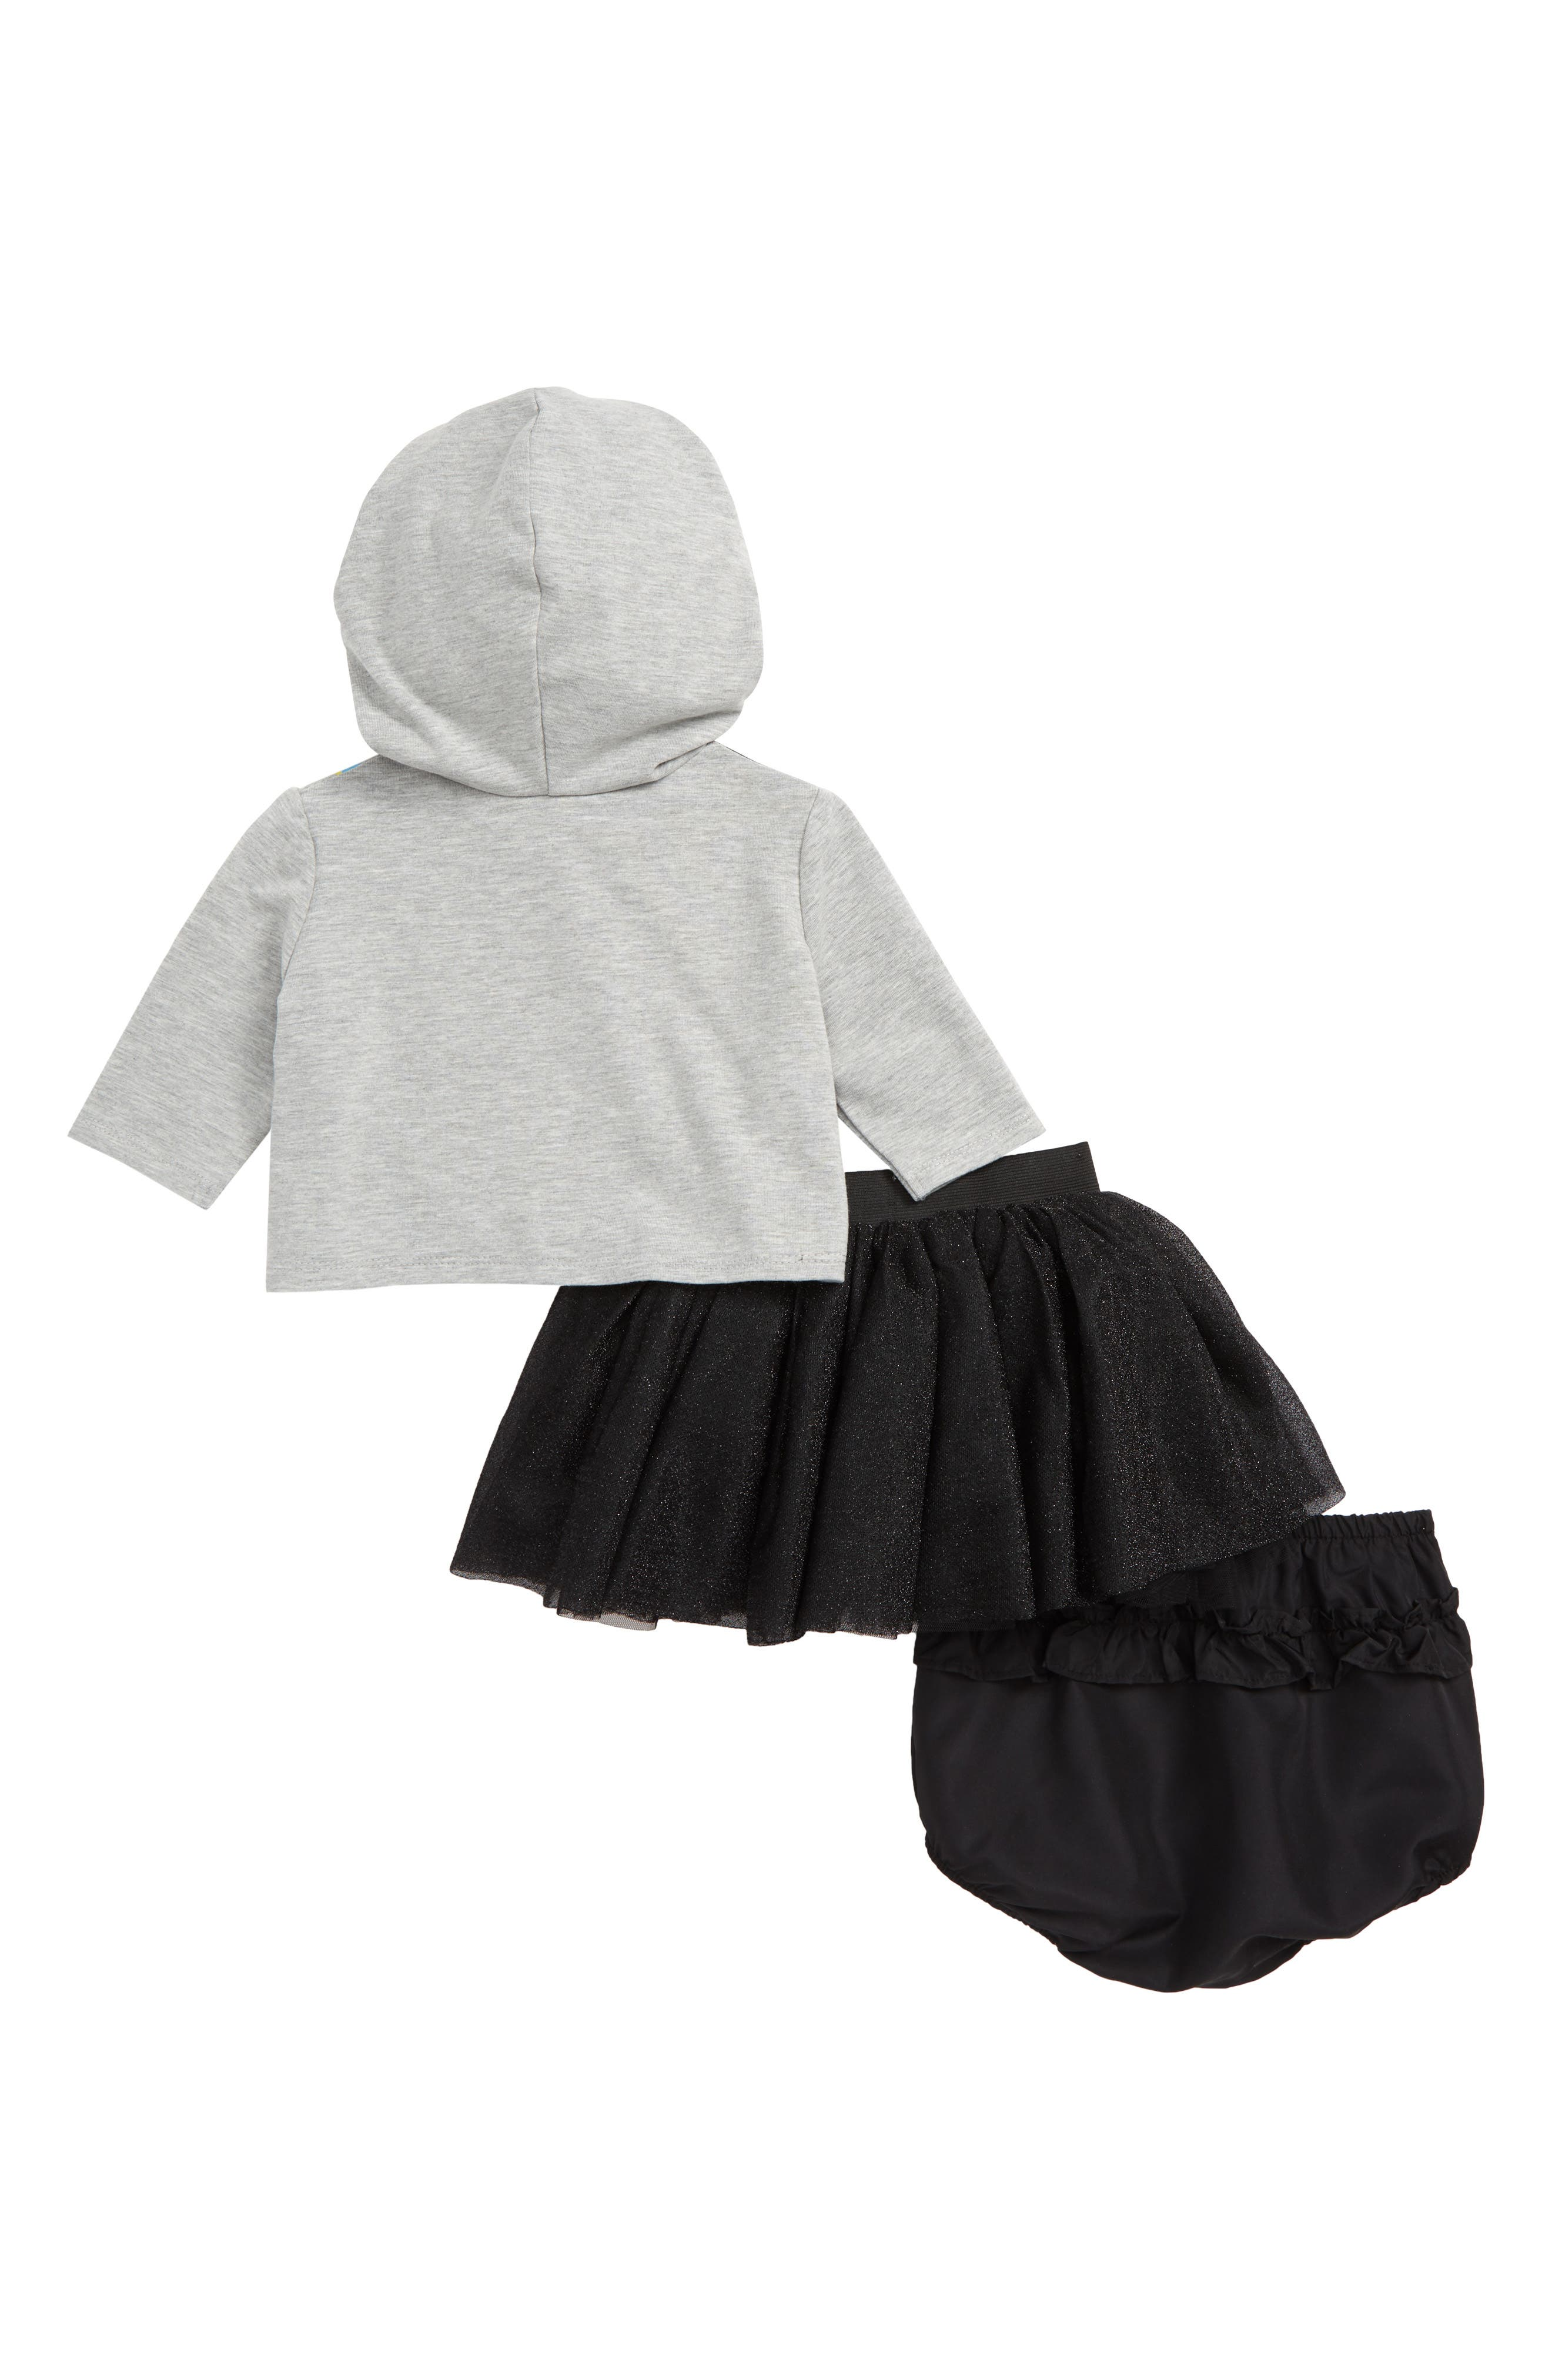 x Disney<sup>®</sup> Mickey Mouse Hoodie, Tutu & Bloomers Set,                             Alternate thumbnail 2, color,                             020